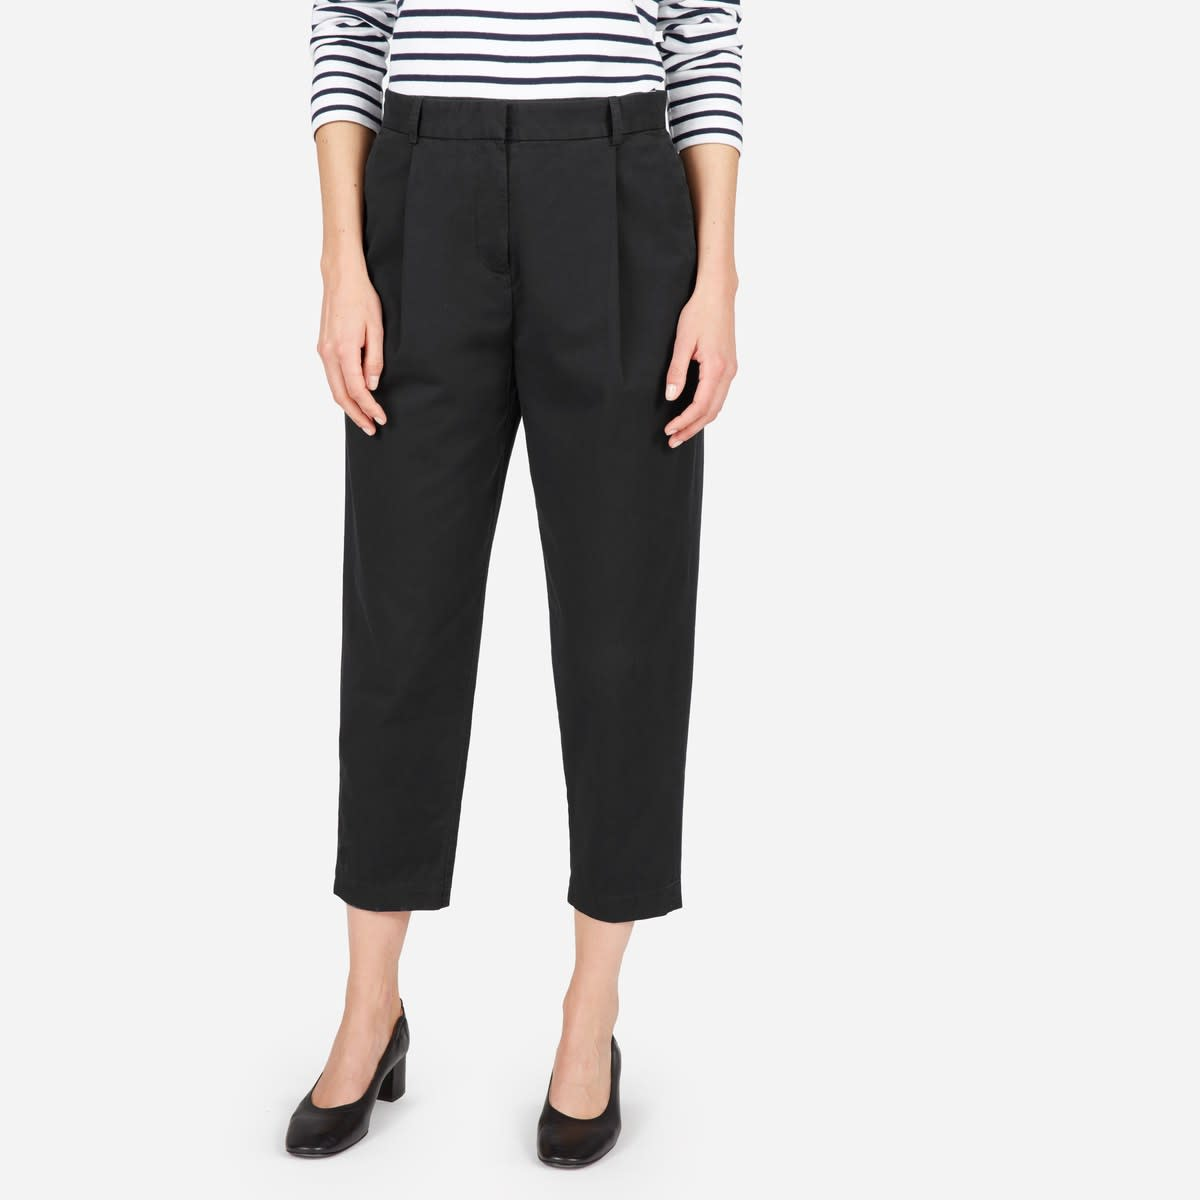 Everlane Slouchy Chino Pant, $58, available at Everlane.